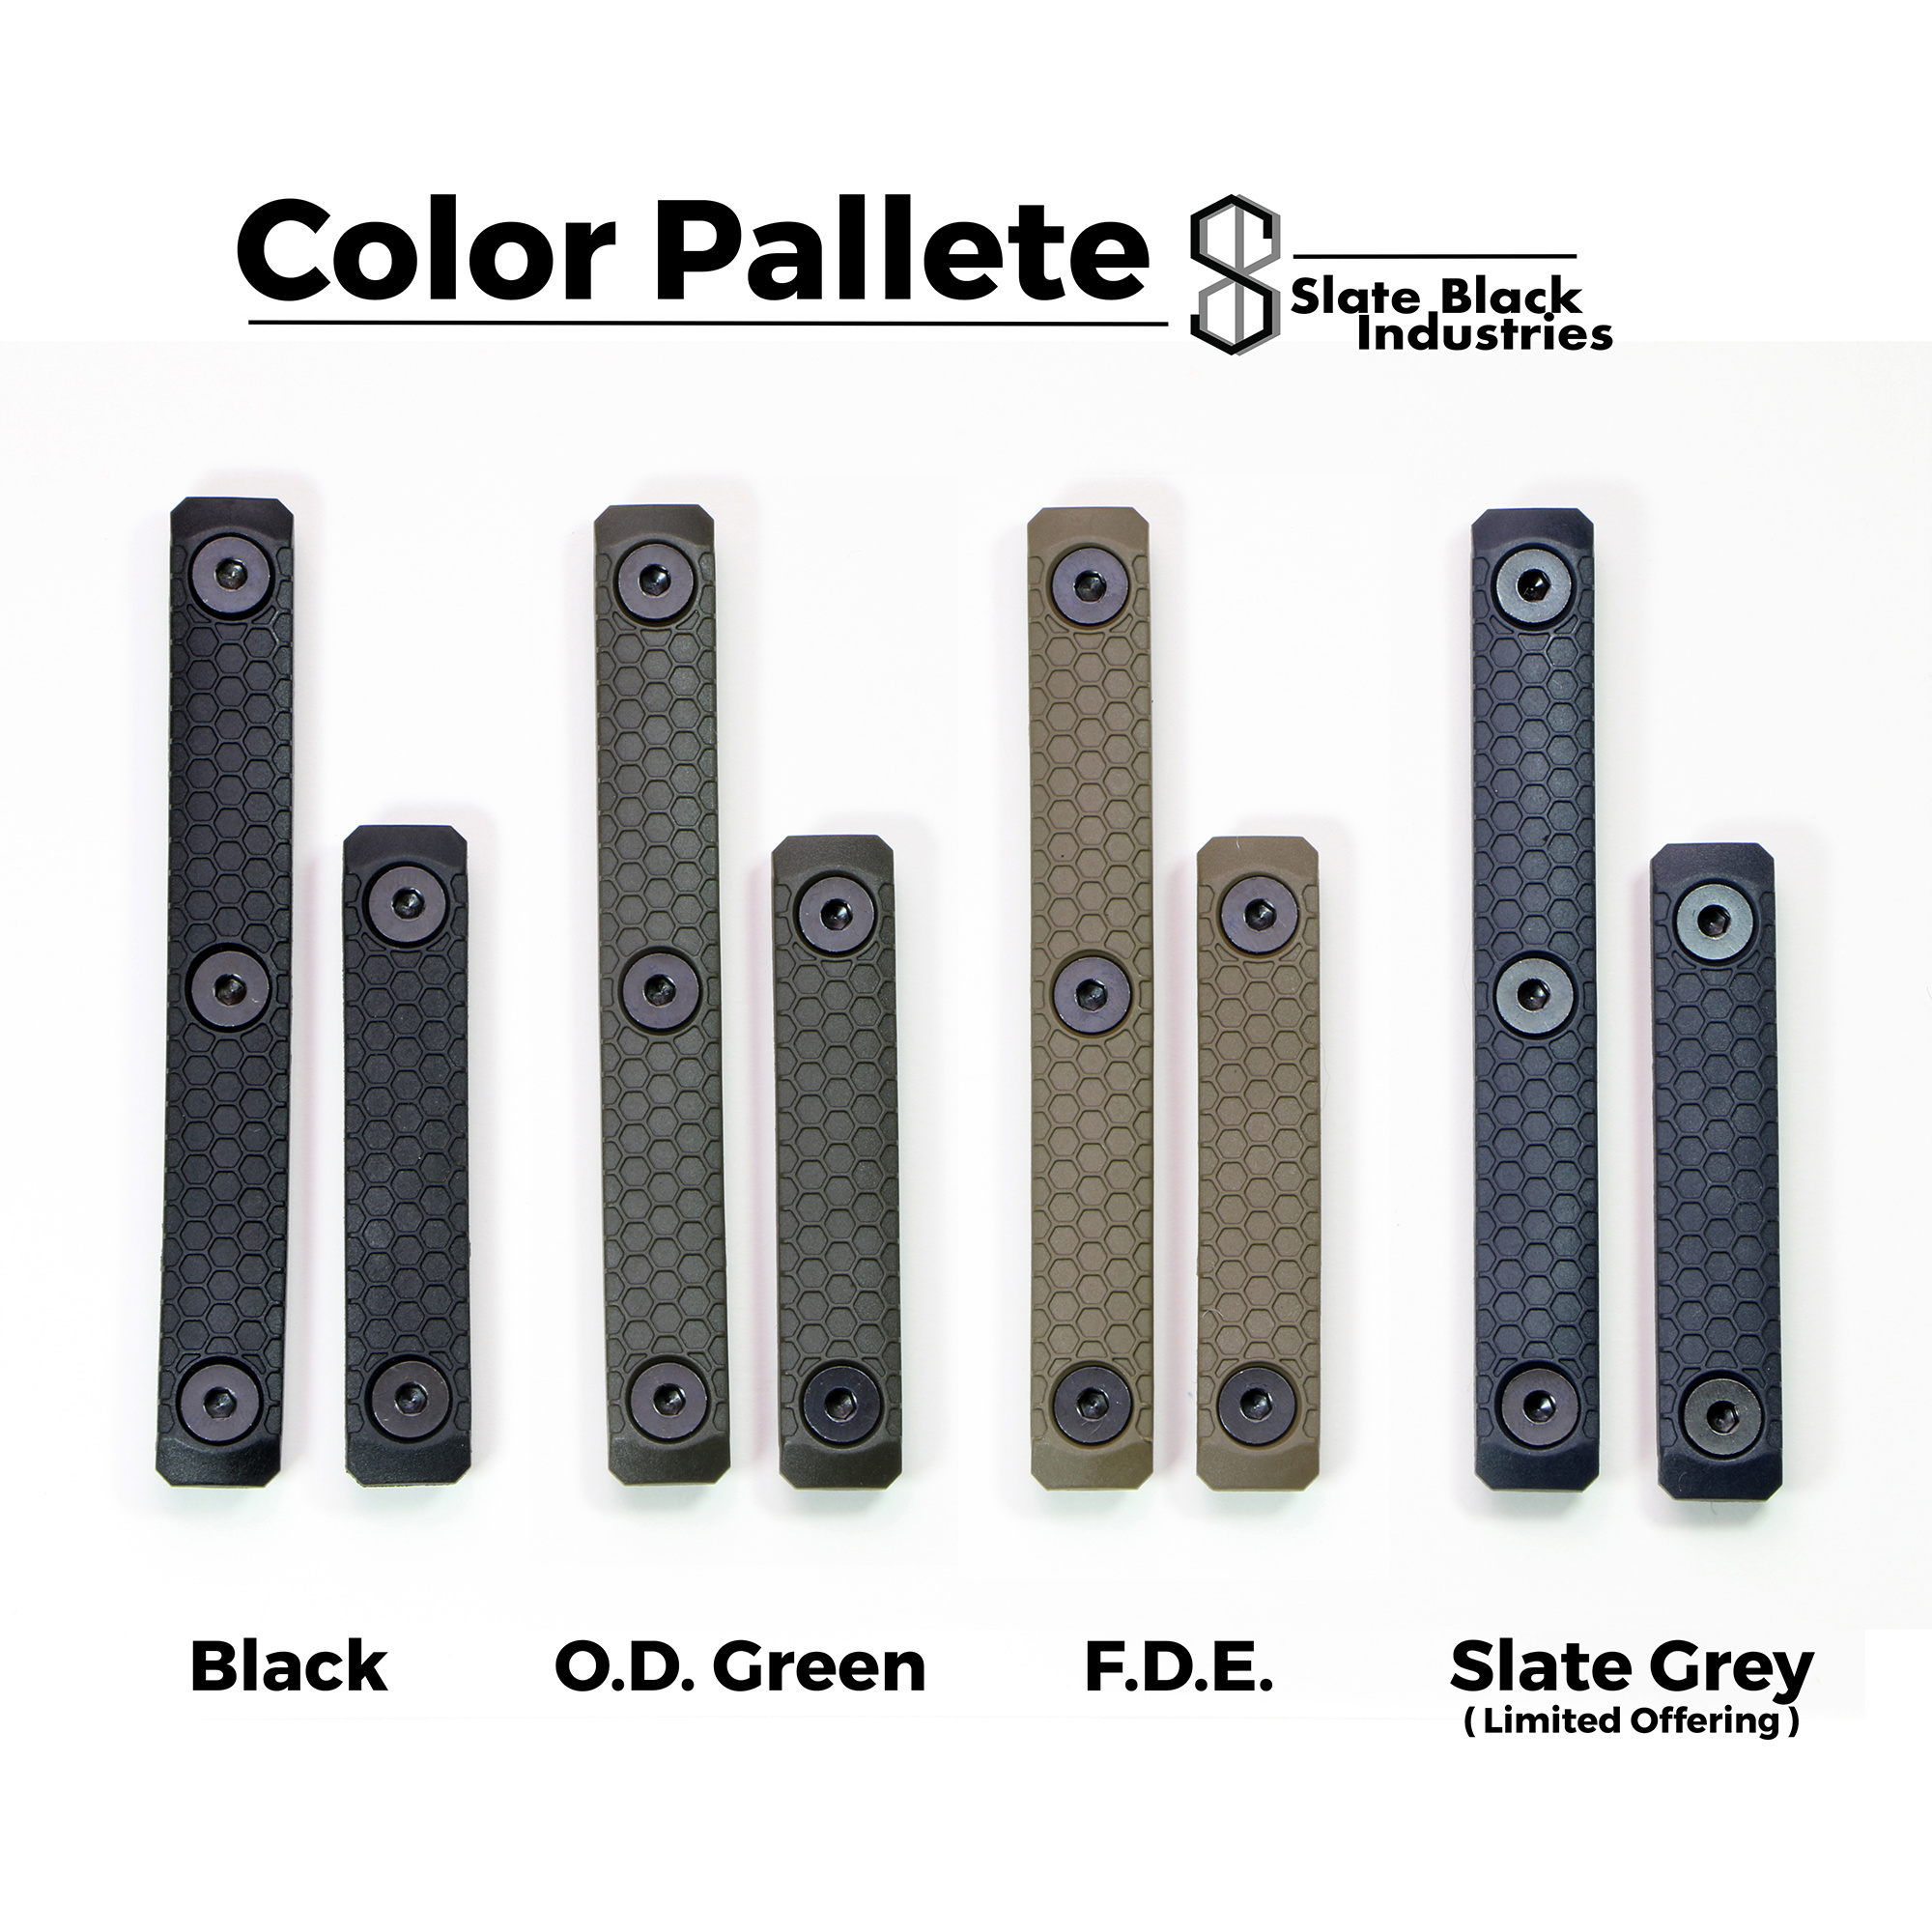 Slate Black Industries Replacement Slate Grip, 3-slot, single panel only